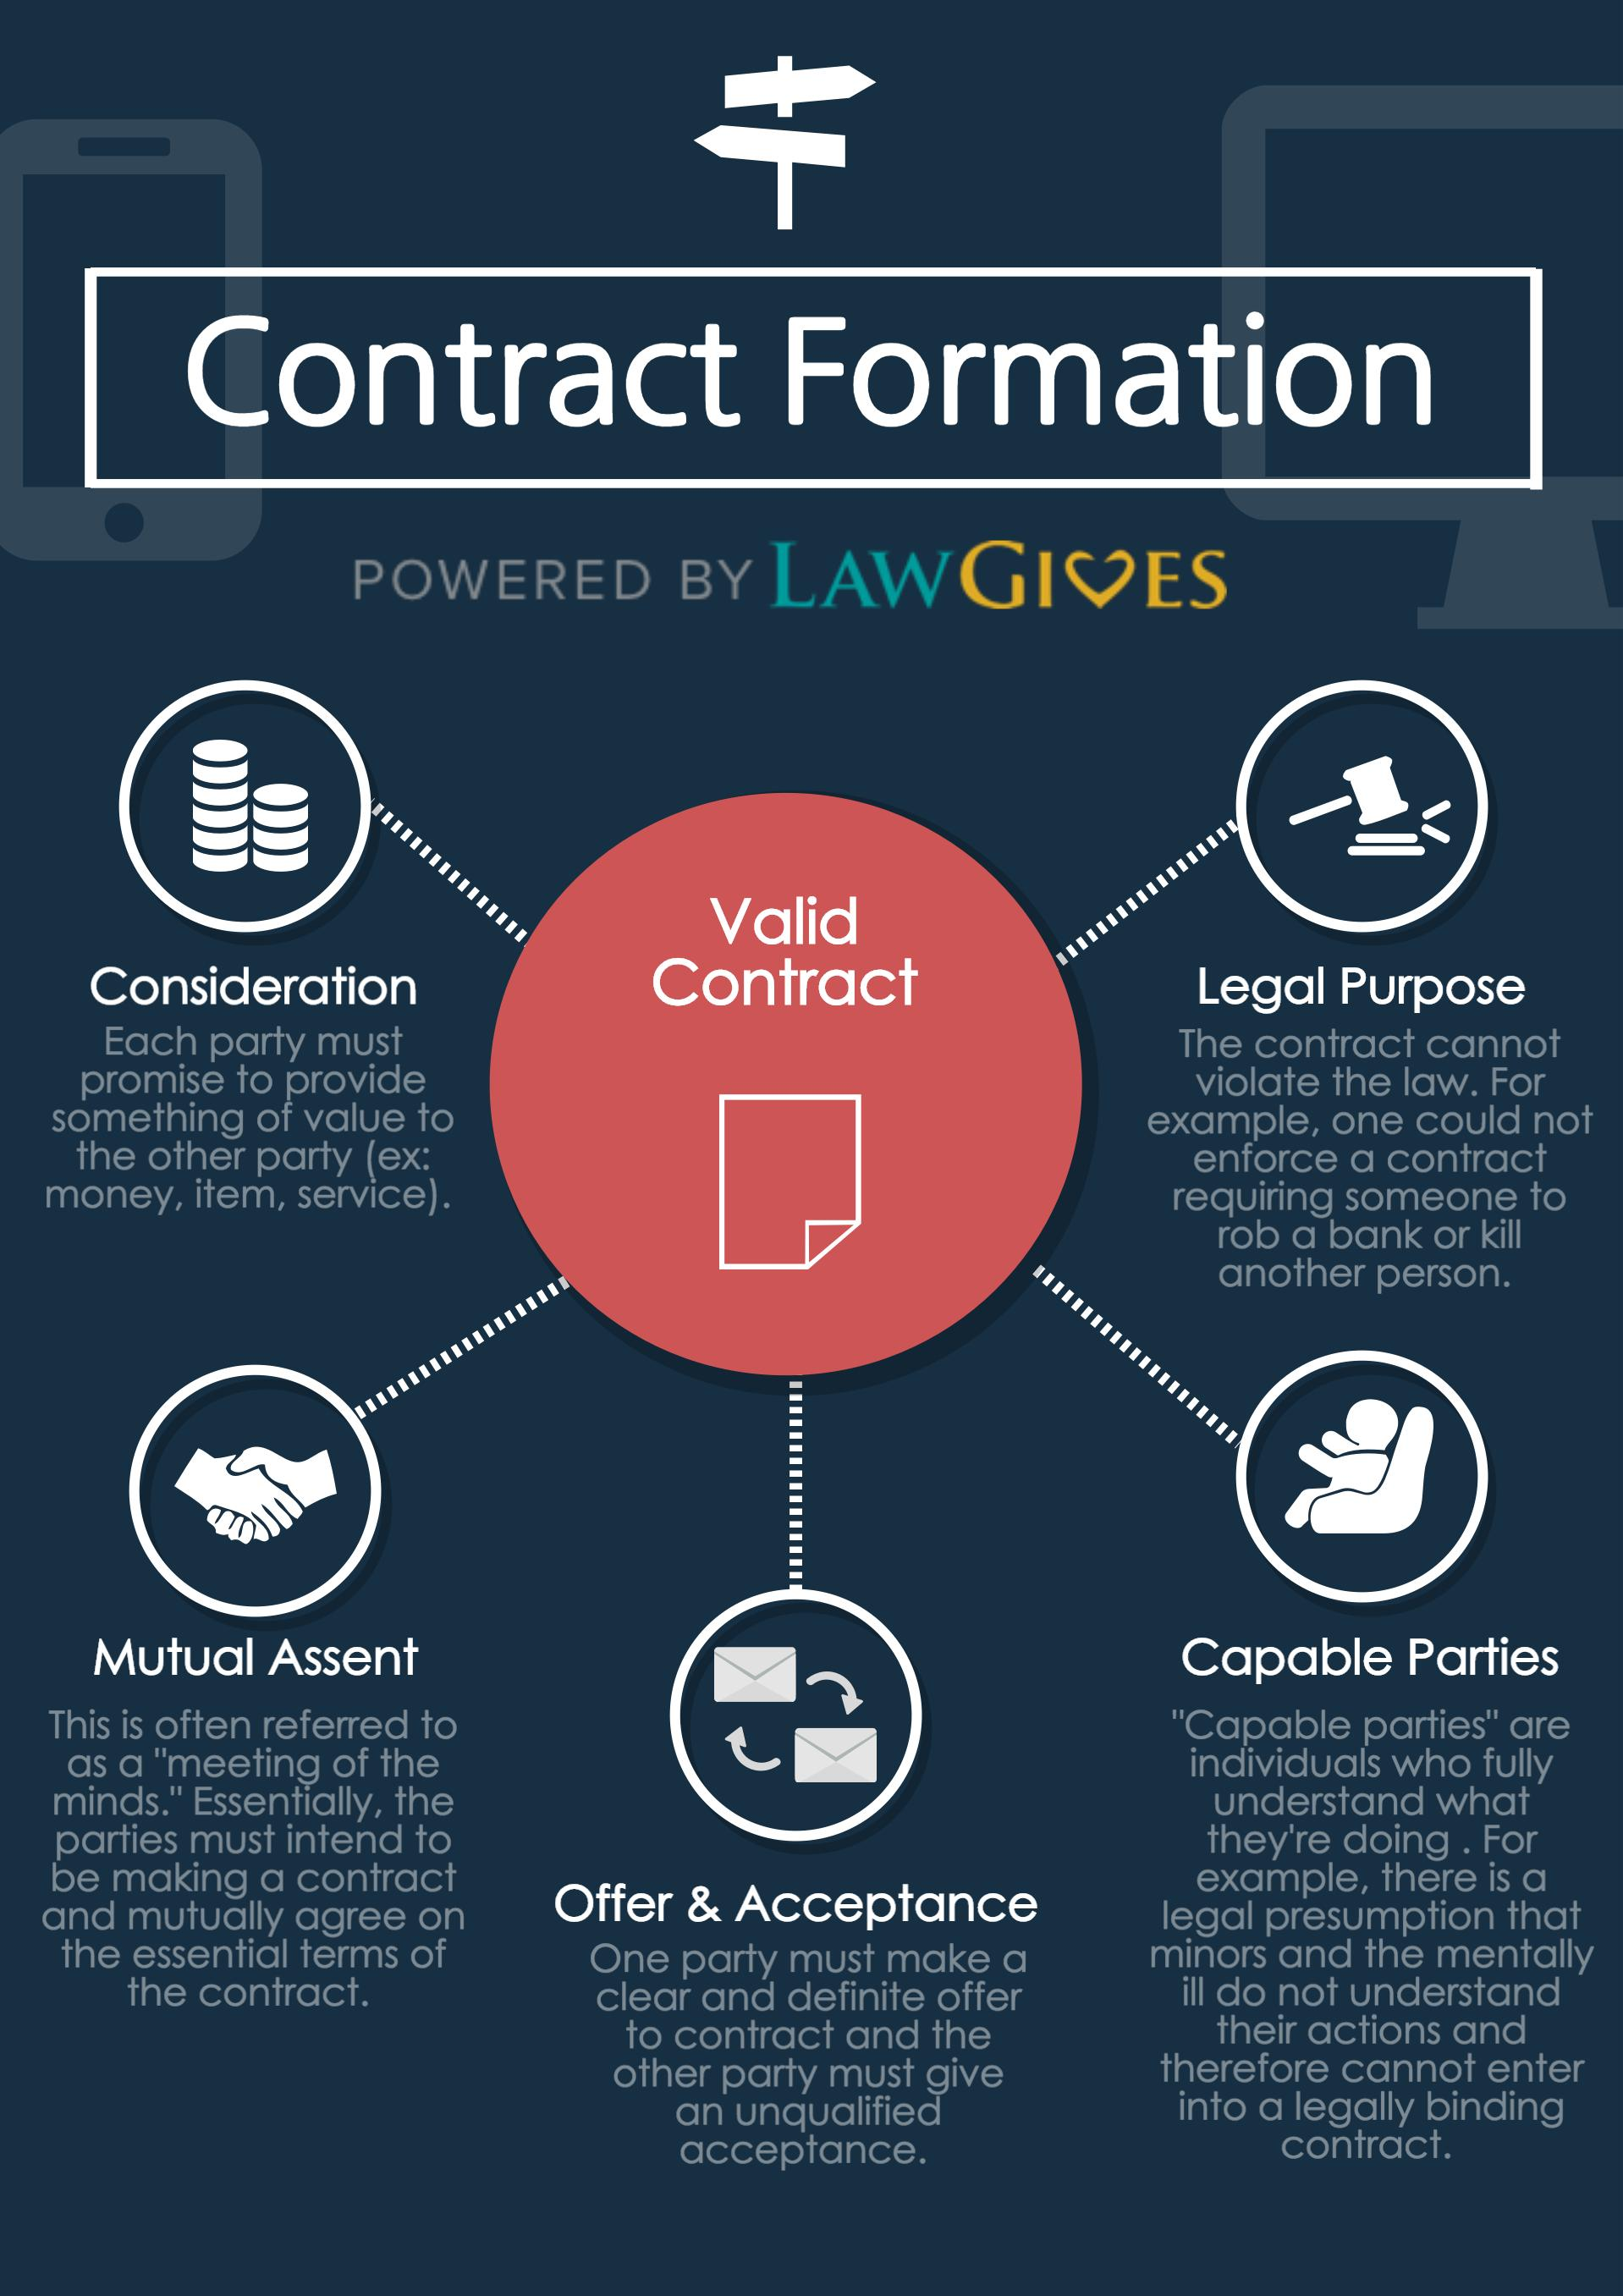 elements of a contract Contract: an agreement between two or more parties to perform or to refrain from some act now or in the future a legally enforceable agreement.